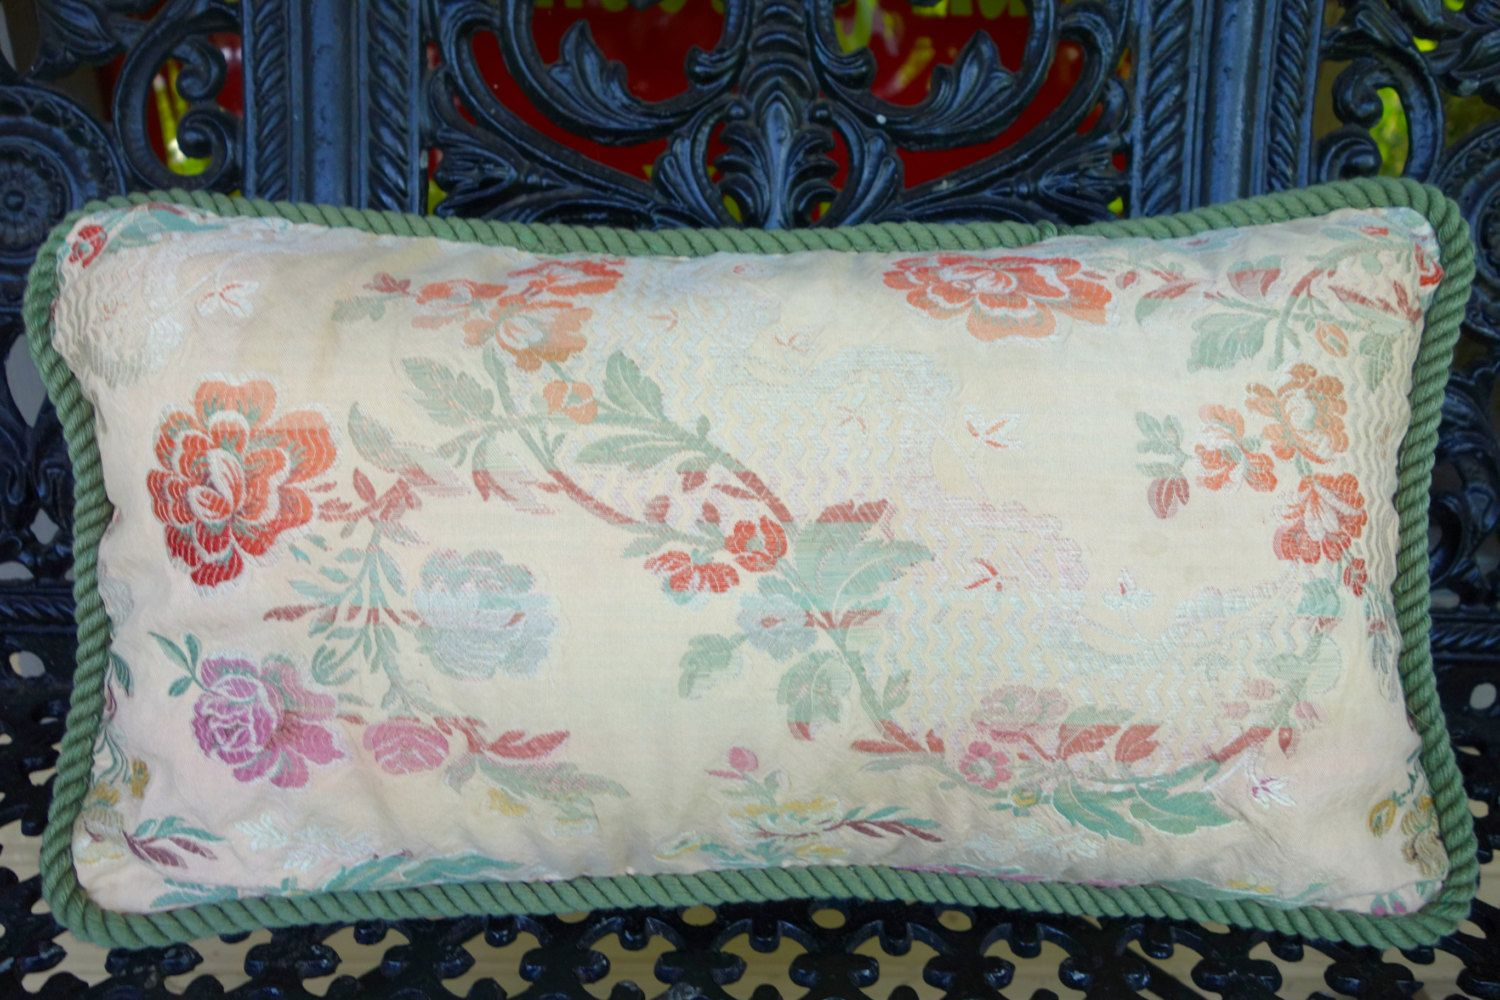 Antique Floral Damask Pillow in Shades of Peach, Plum and Green, Bedroom Decor, Living Room Decor, Handmade Rectangular Pillow, Gift Idea - pinned by pin4etsy.com